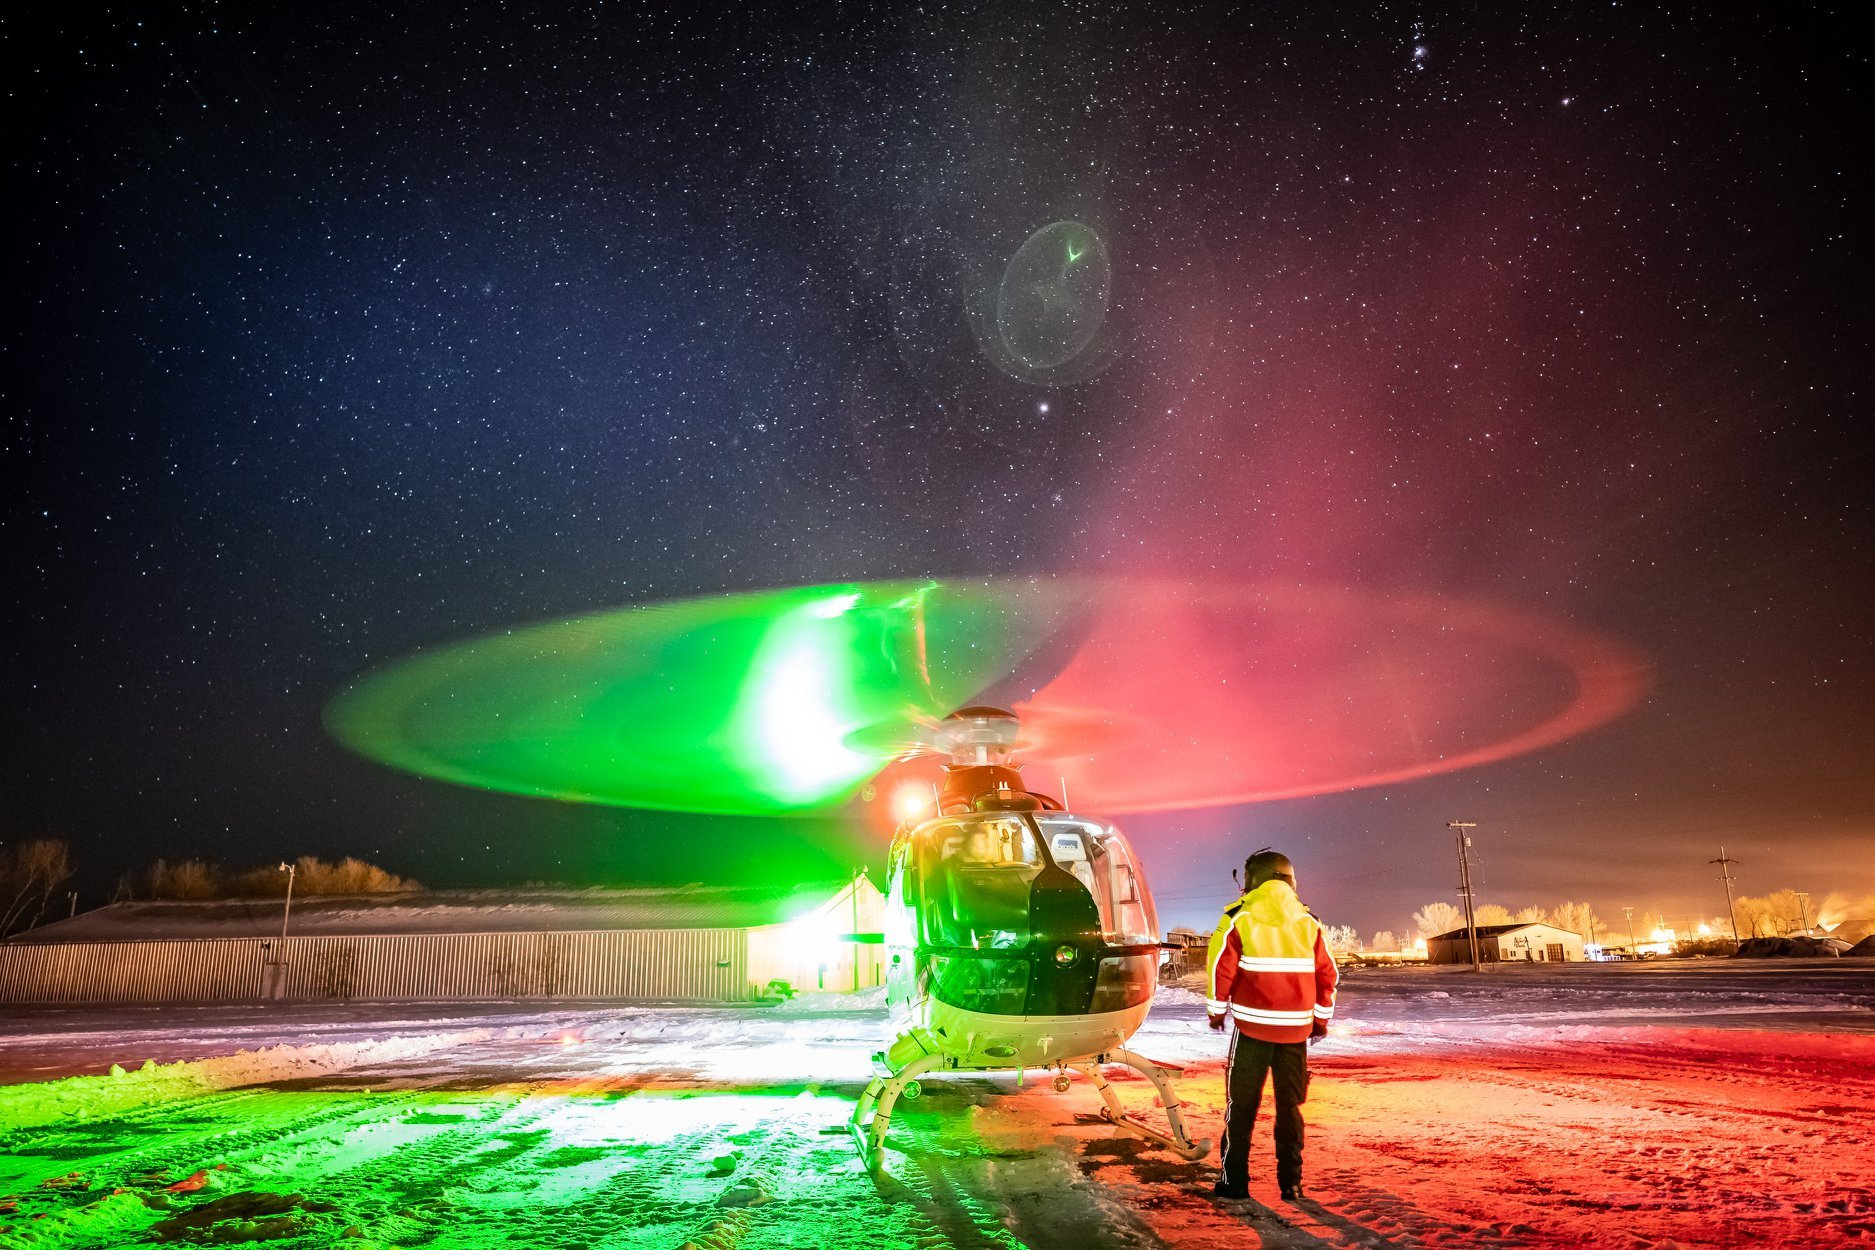 A Benefis Mercy Flight Airbus EC135. Photo submitted by Zach Stricklin (Instagram user @zstricklin) using #verticalmag